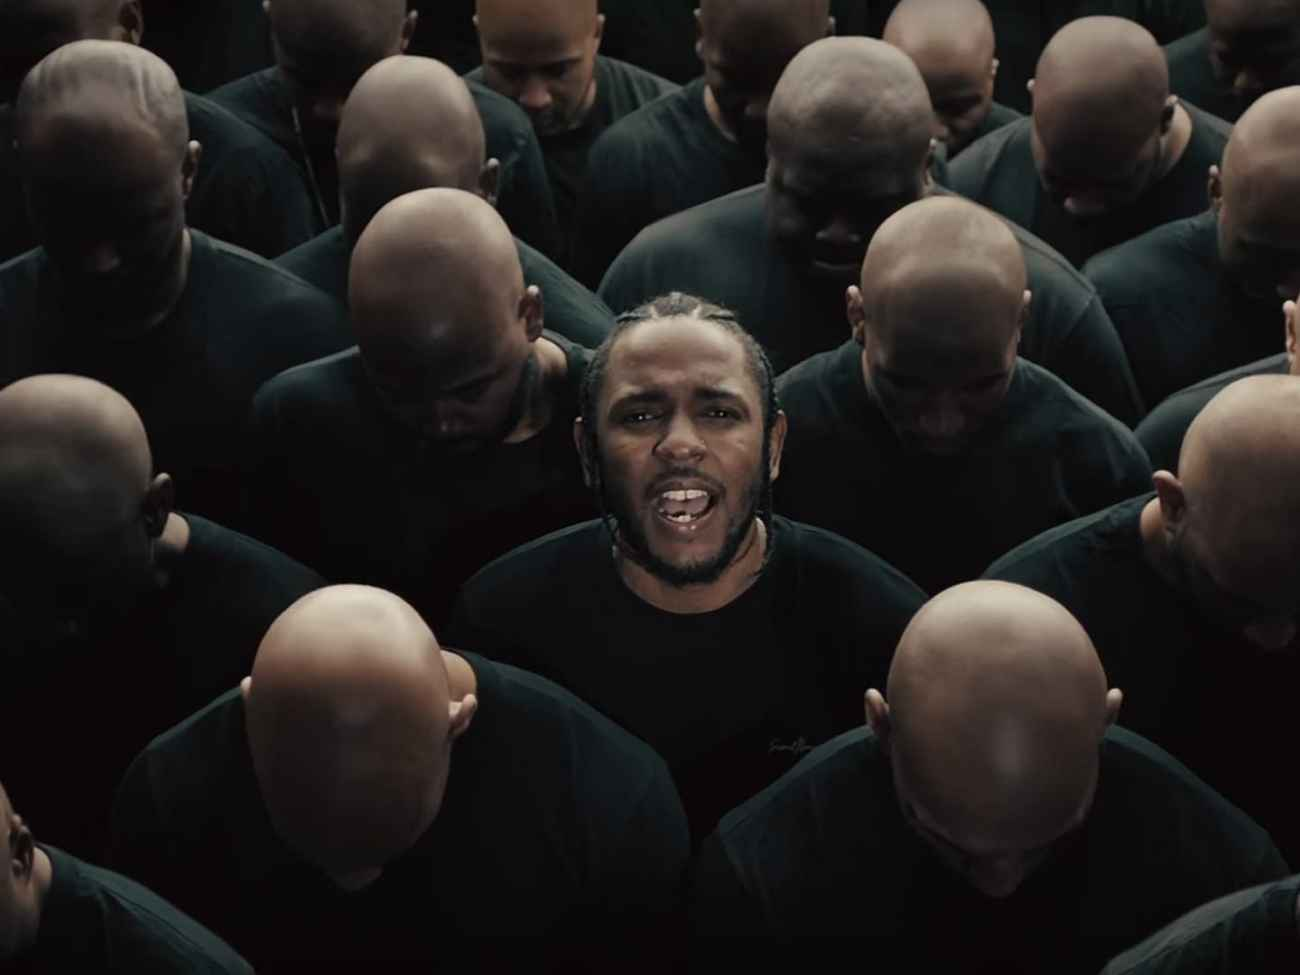 Kendrick Lamar Humble music video